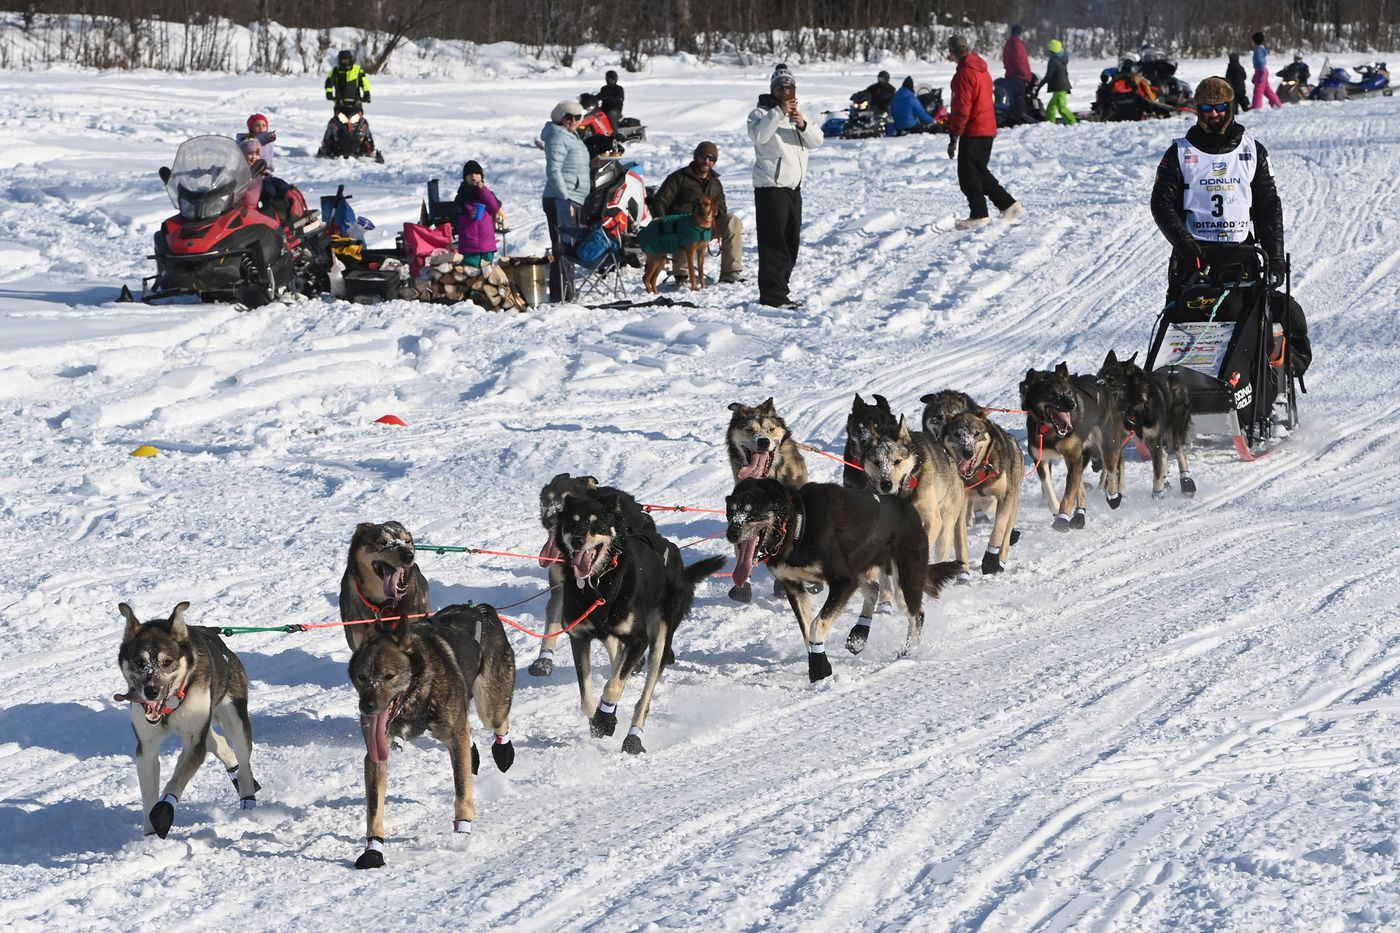 Iditarod champion Pete Kaiser drives his dog team past spectators on the Susitna River during the start of the Iditarod Trail Sled Dog Race in Willow on Sunday, March 7, 2021. (Bill Roth / ADN)